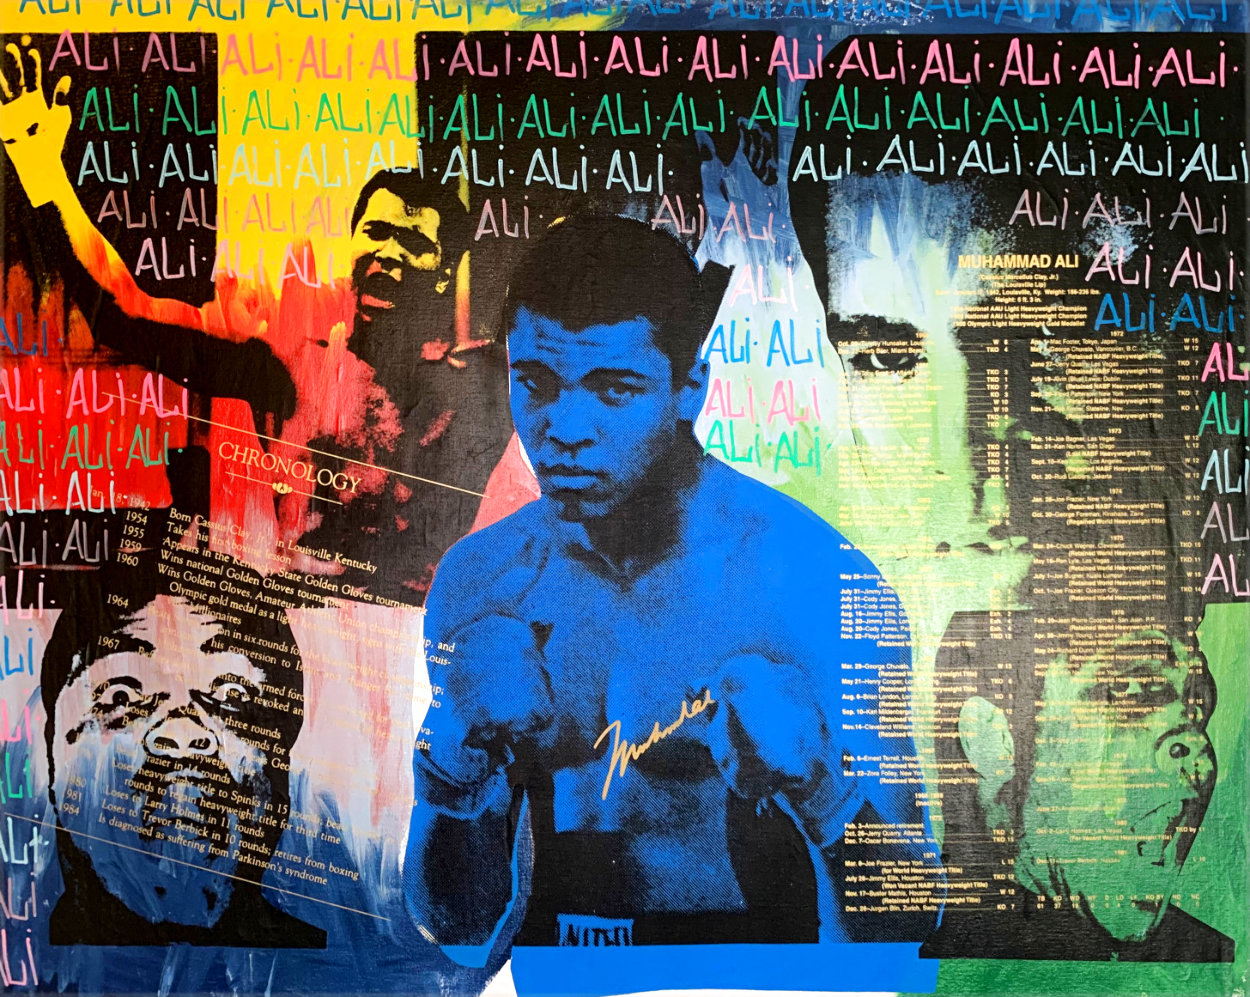 Ali Olympic the Greatest 1995 Embellished Canvas HS by Ali  Limited Edition Print by Steve Kaufman